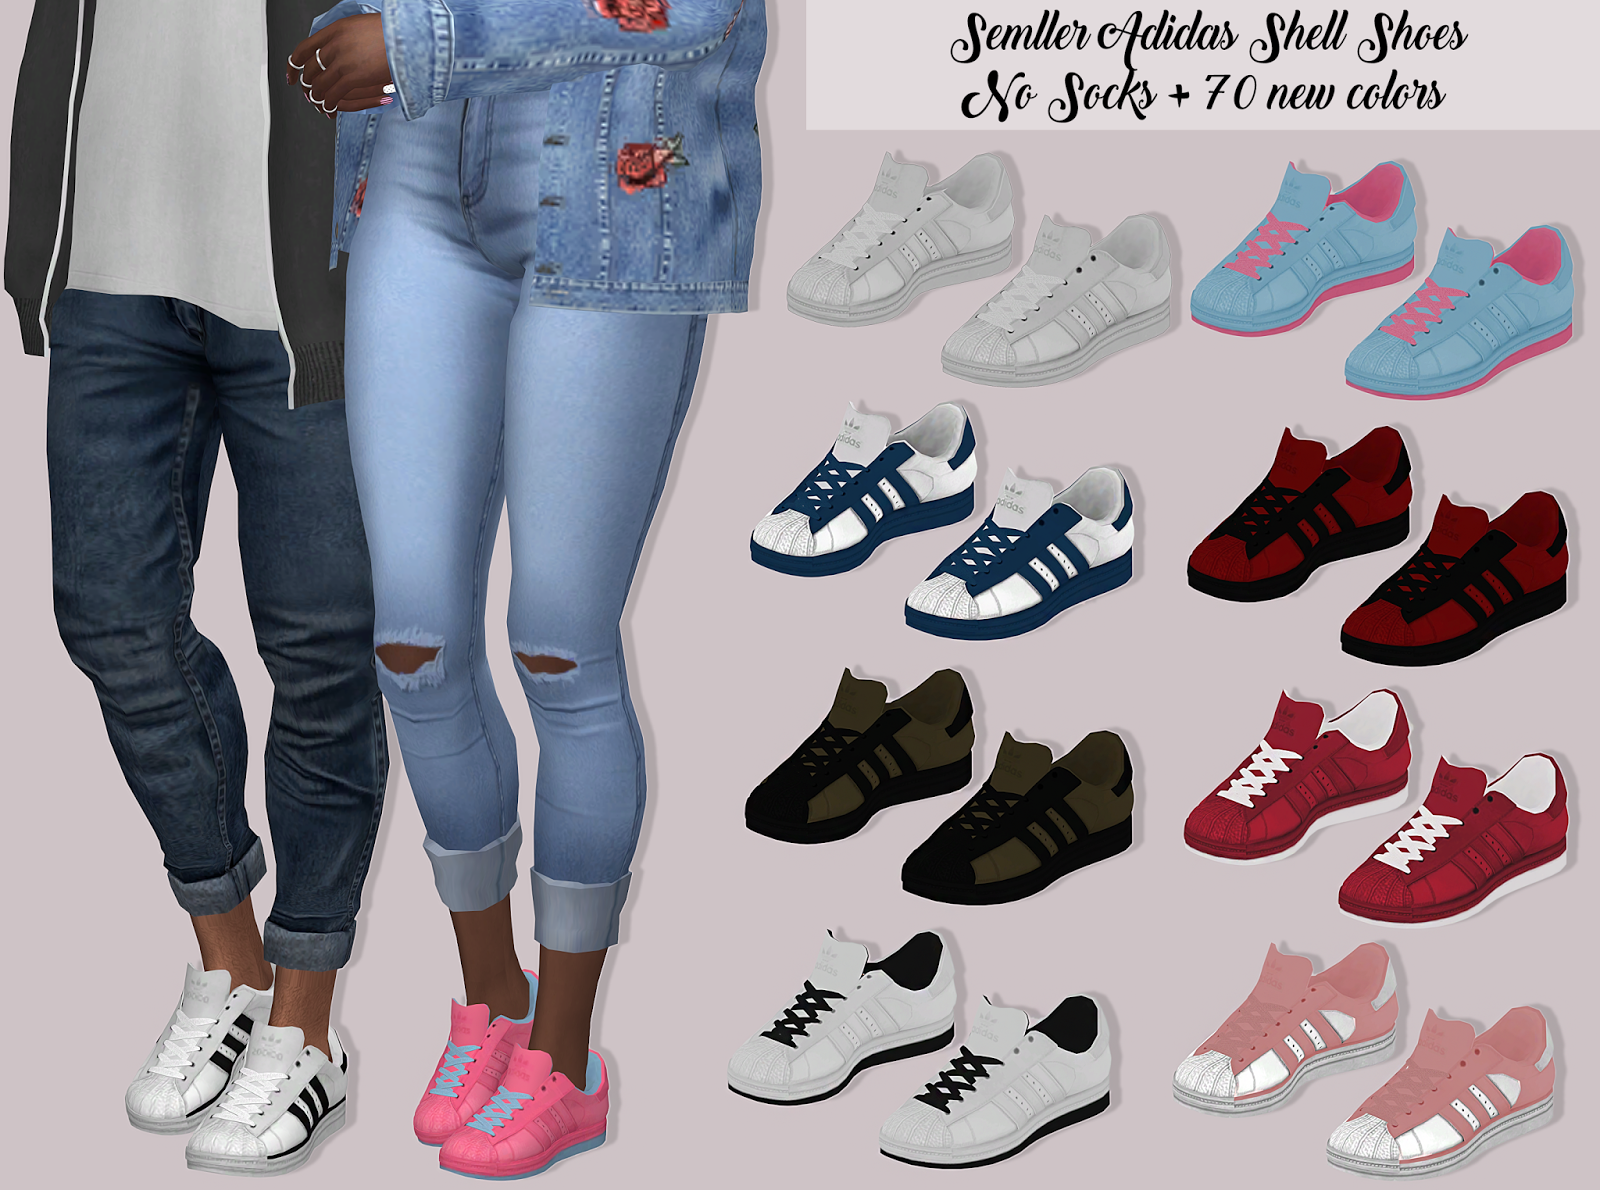 The Sims 4 Adidas Men's Clothing & Shoes PACK ( Adidas Apparel for Sports & Casual)